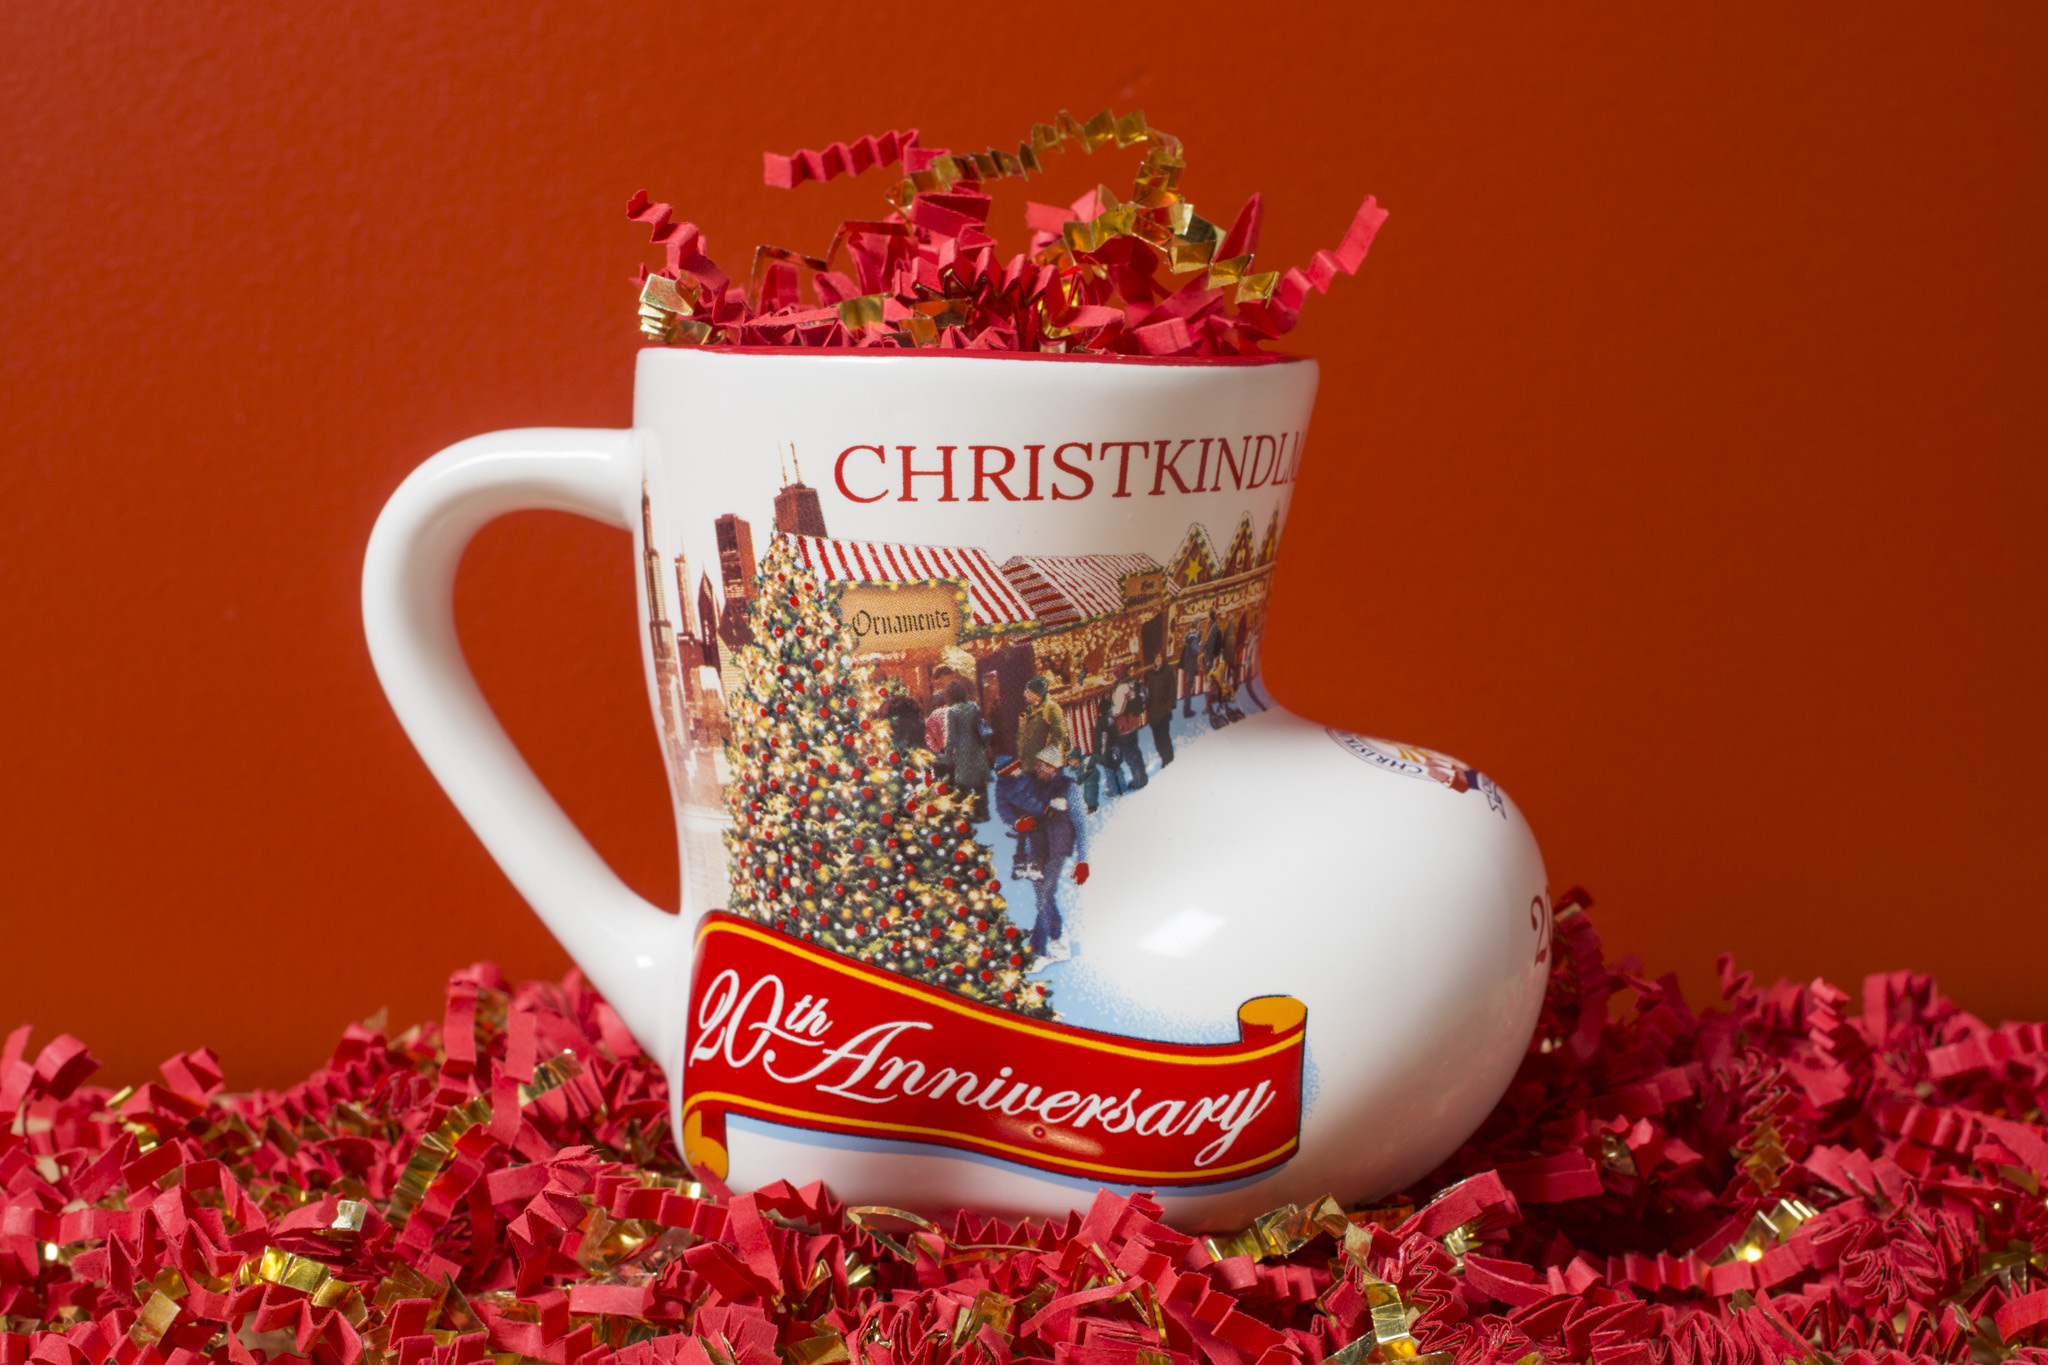 Christkindlmarket reveals its mug—and it's a boot